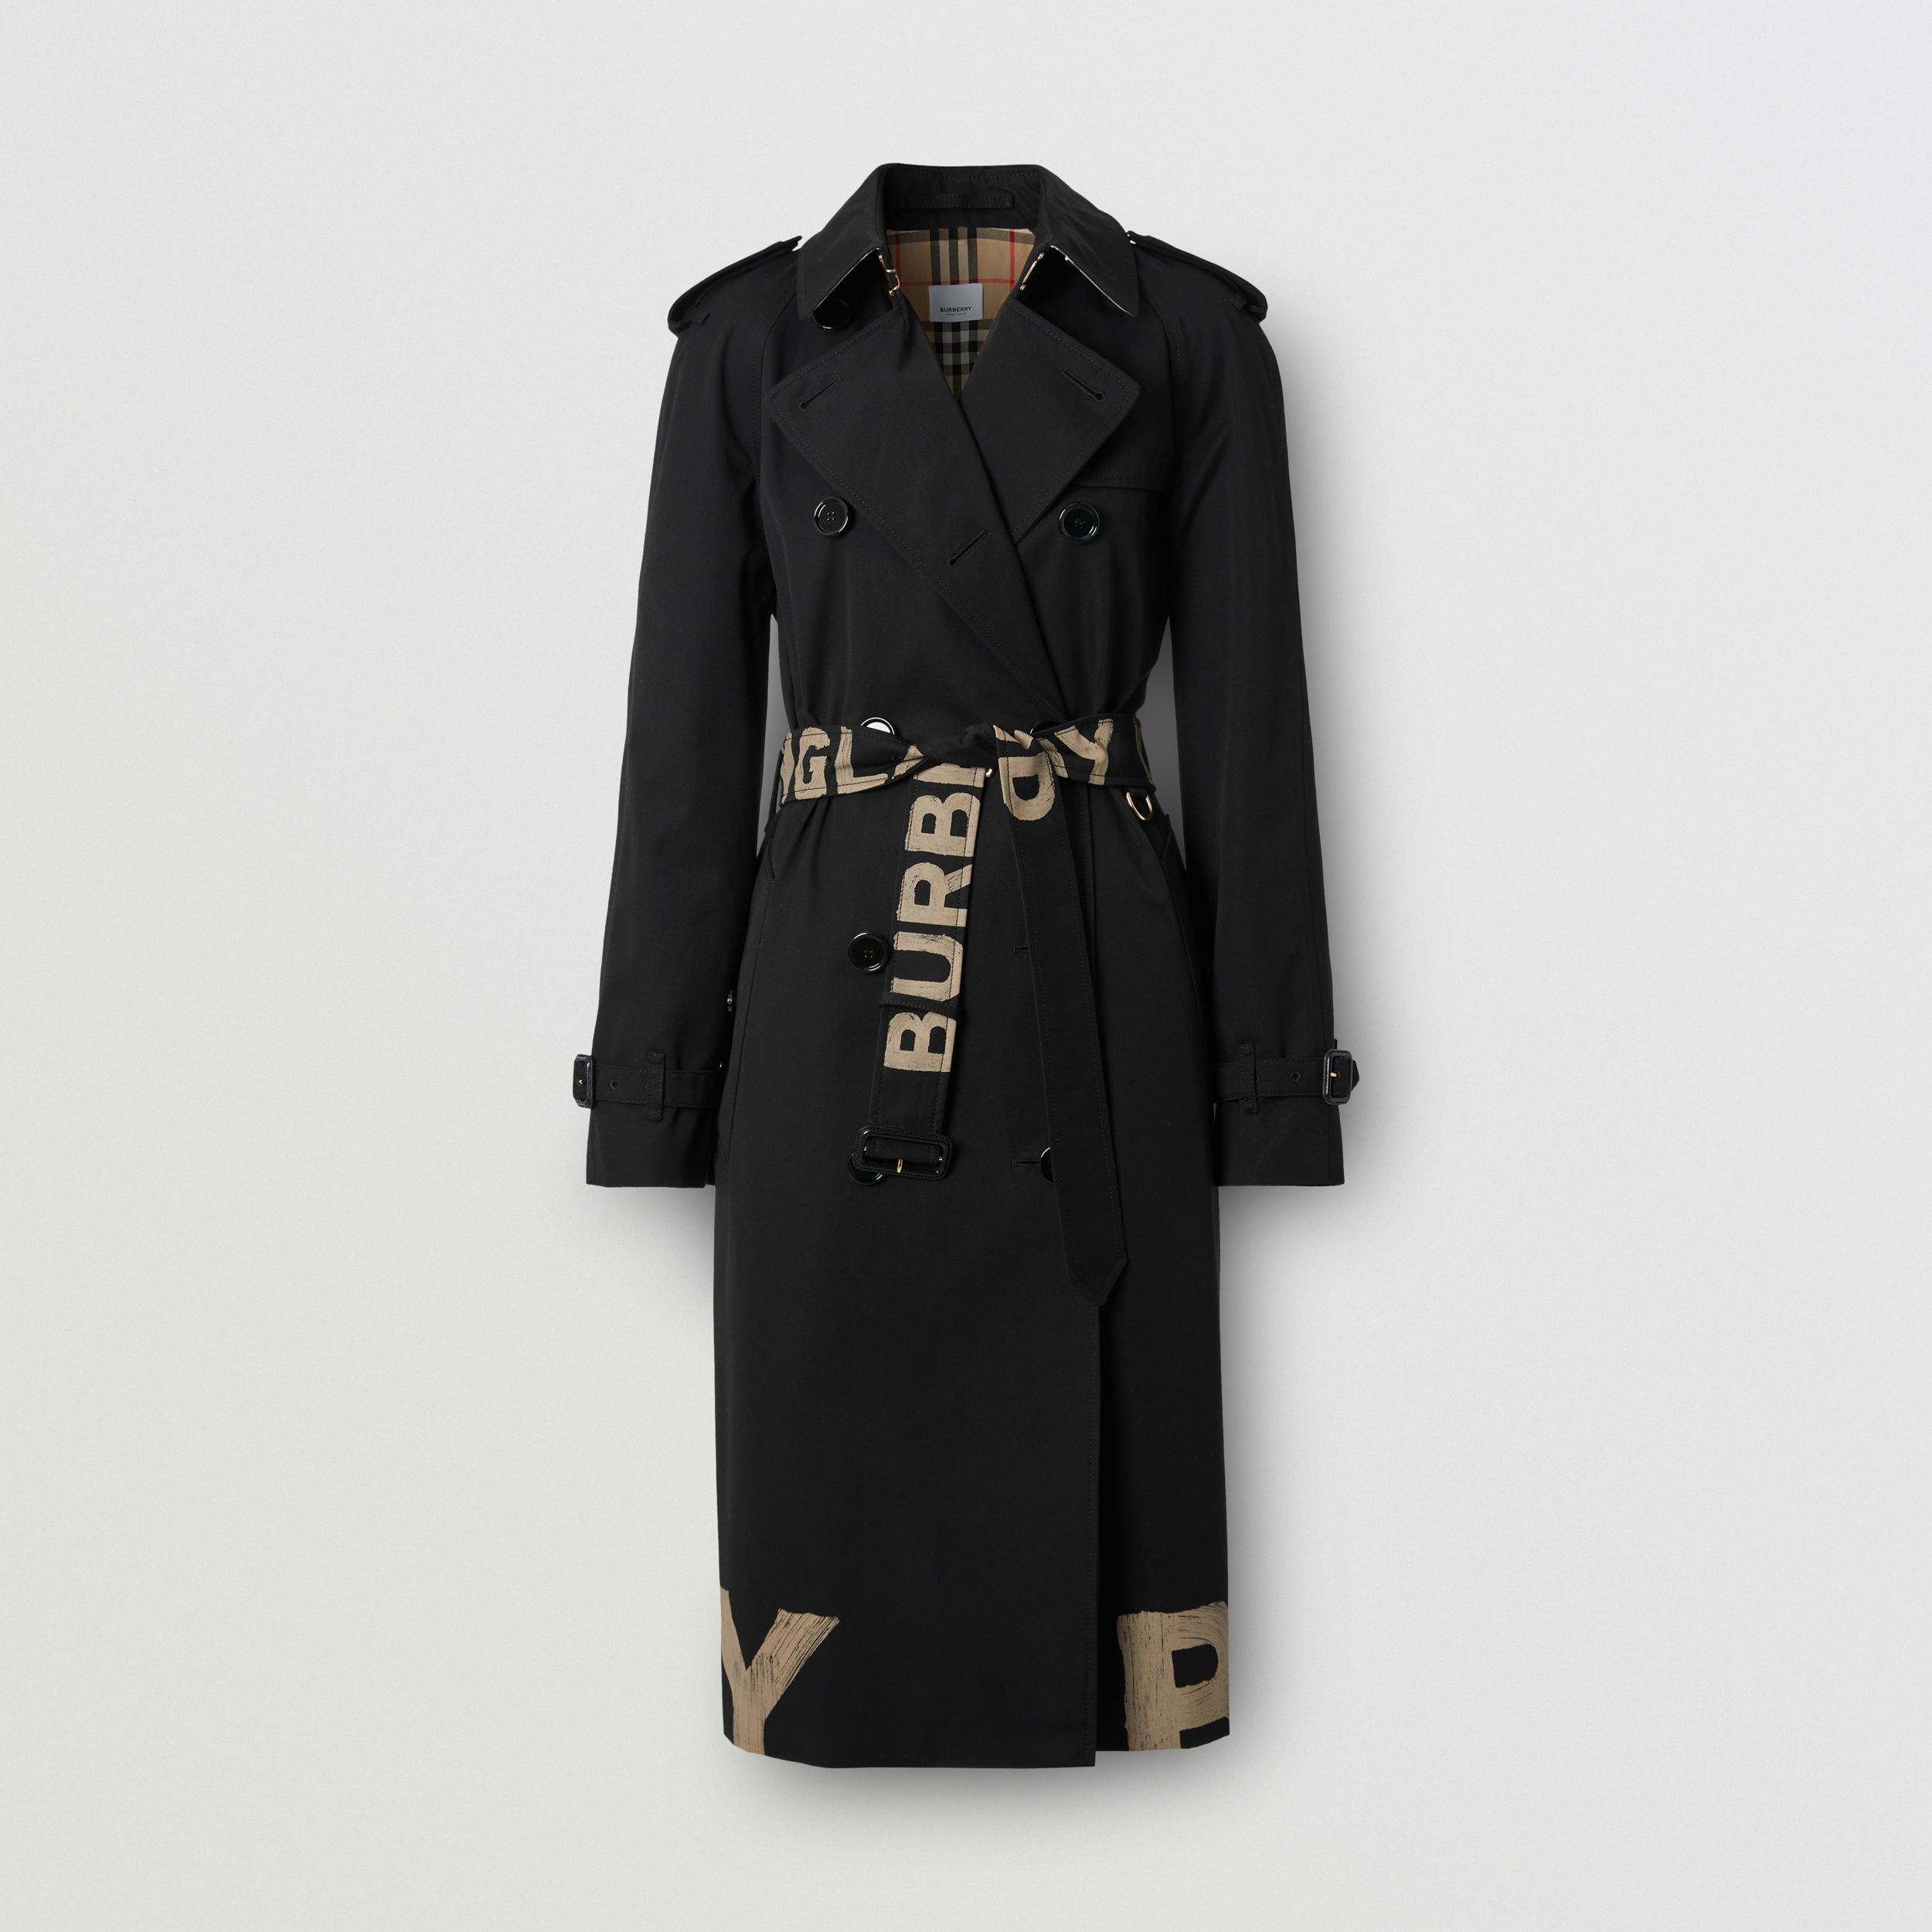 Logo Print Cotton Gabardine Trench Coat in Black - Women | Burberry - 3